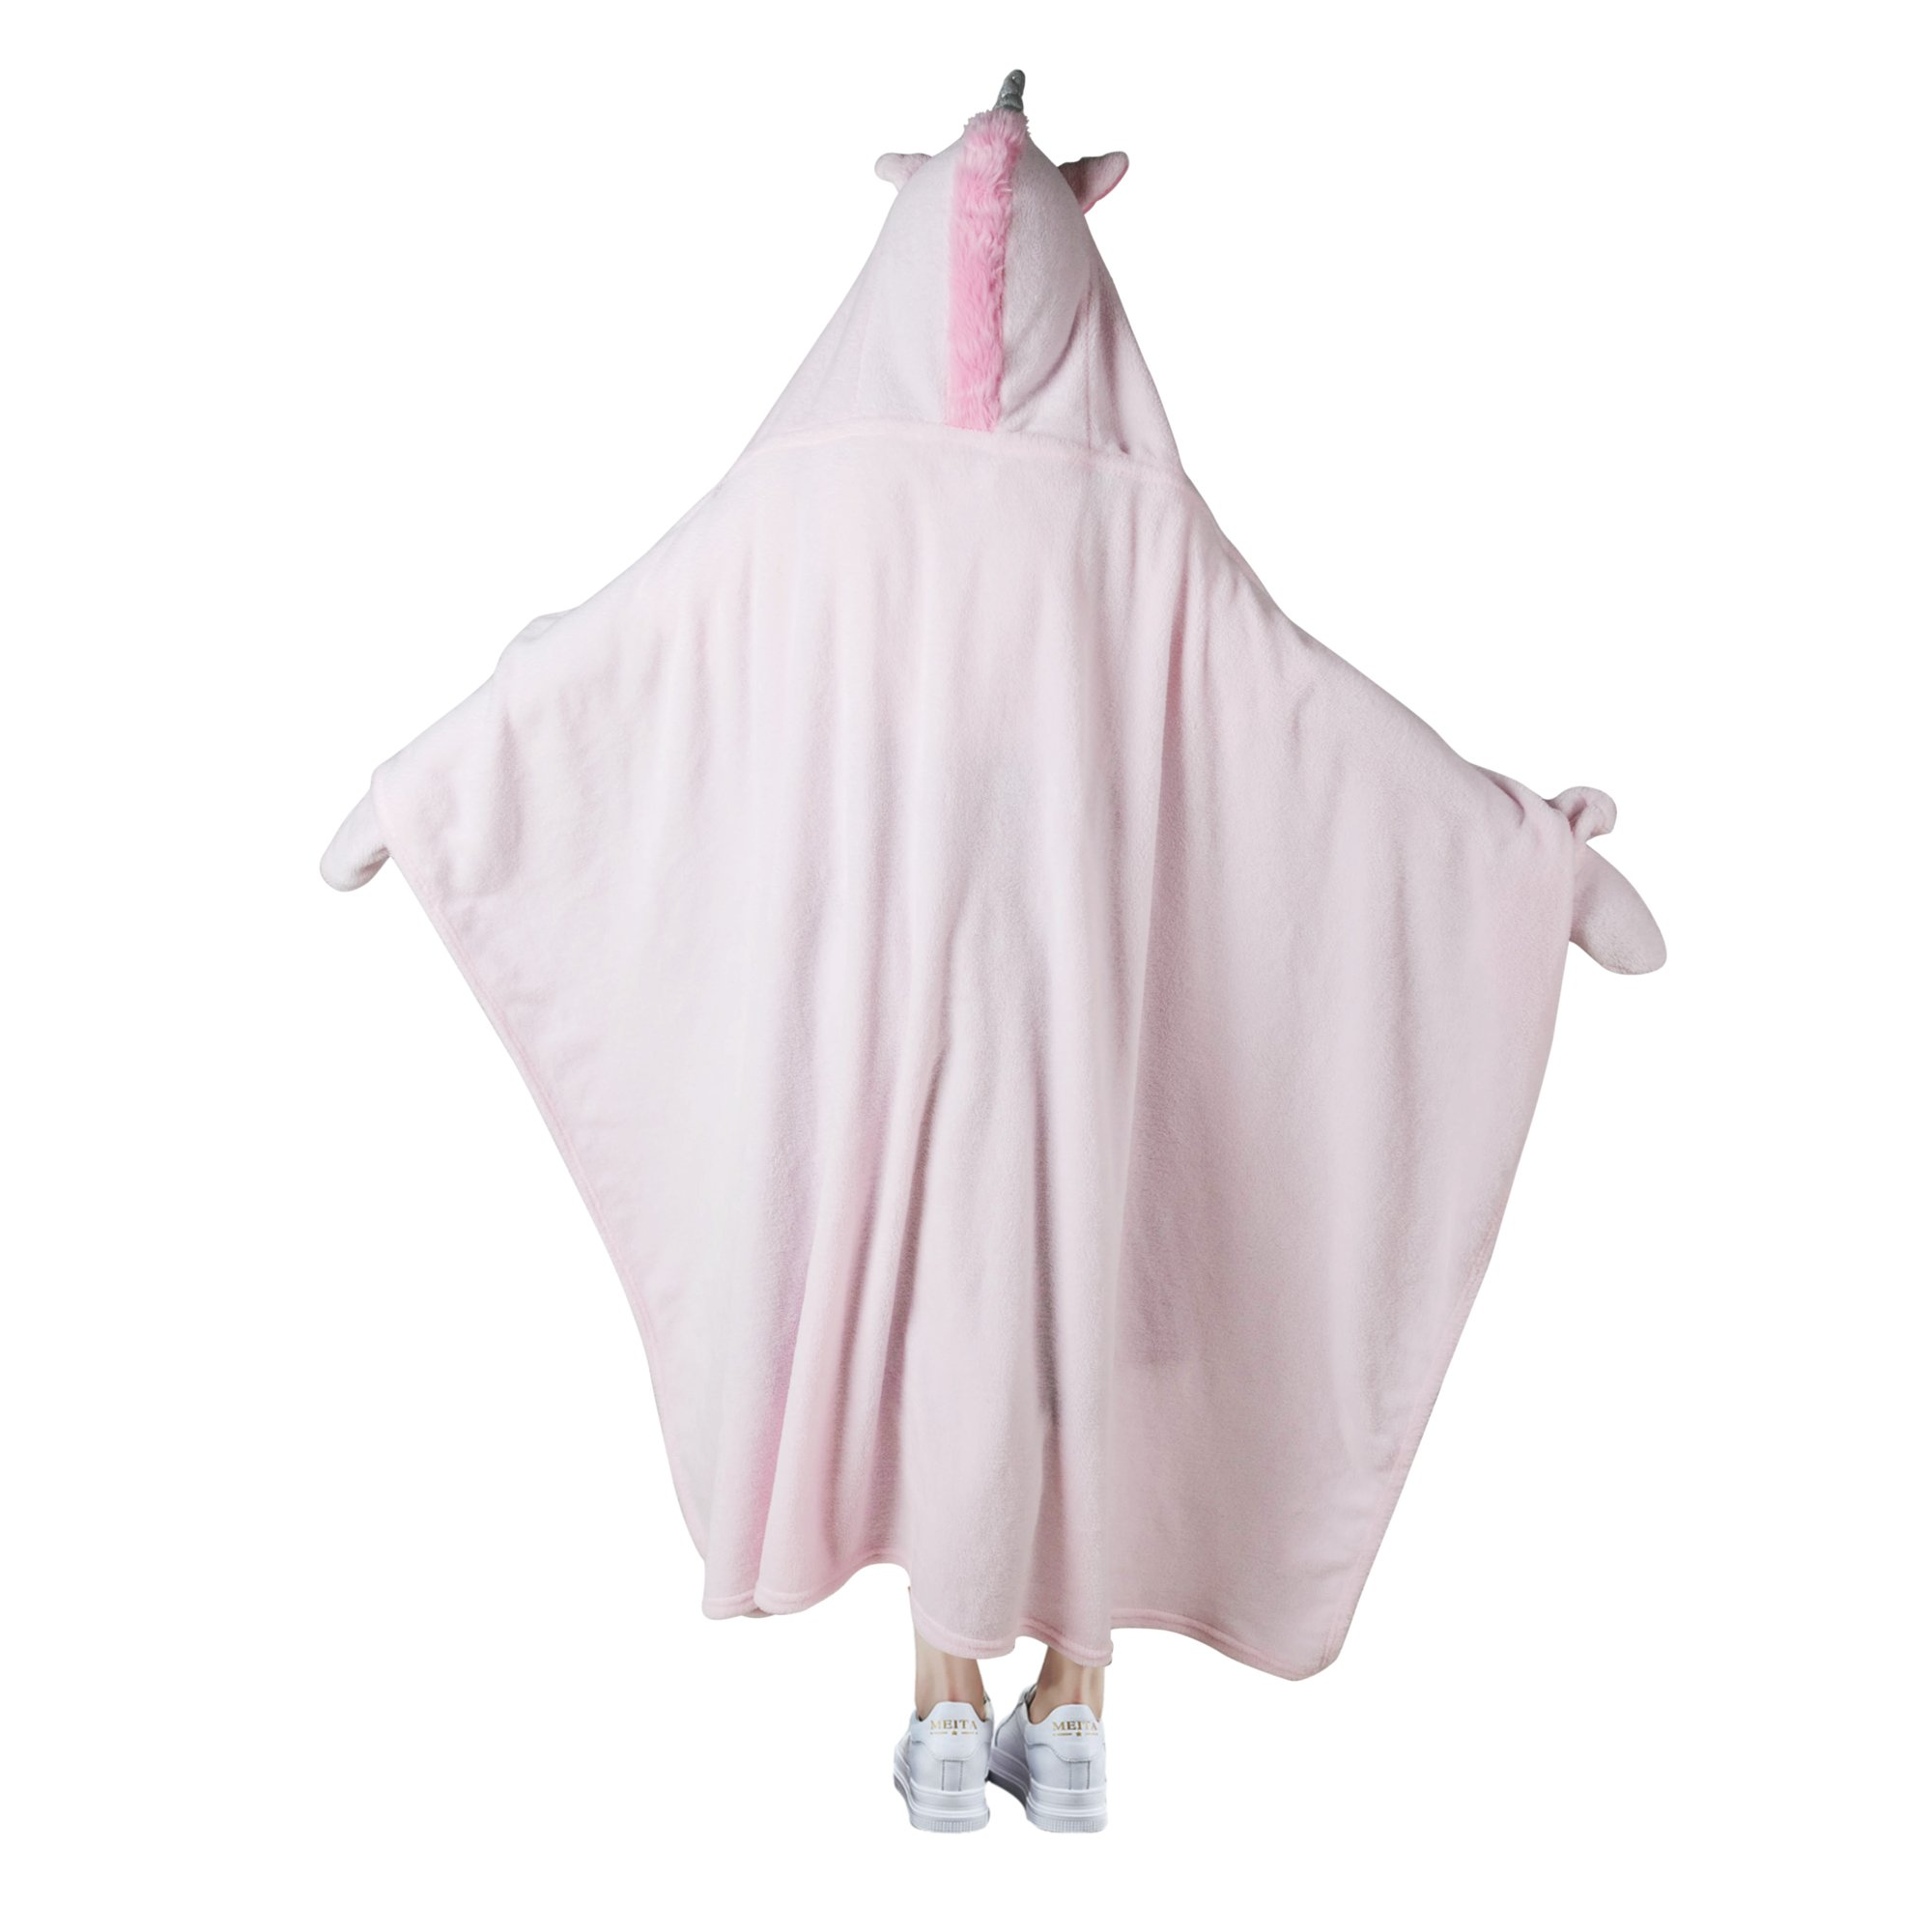 Children's Hooded Animal Blankets For Kids (Unicorn Blanket)